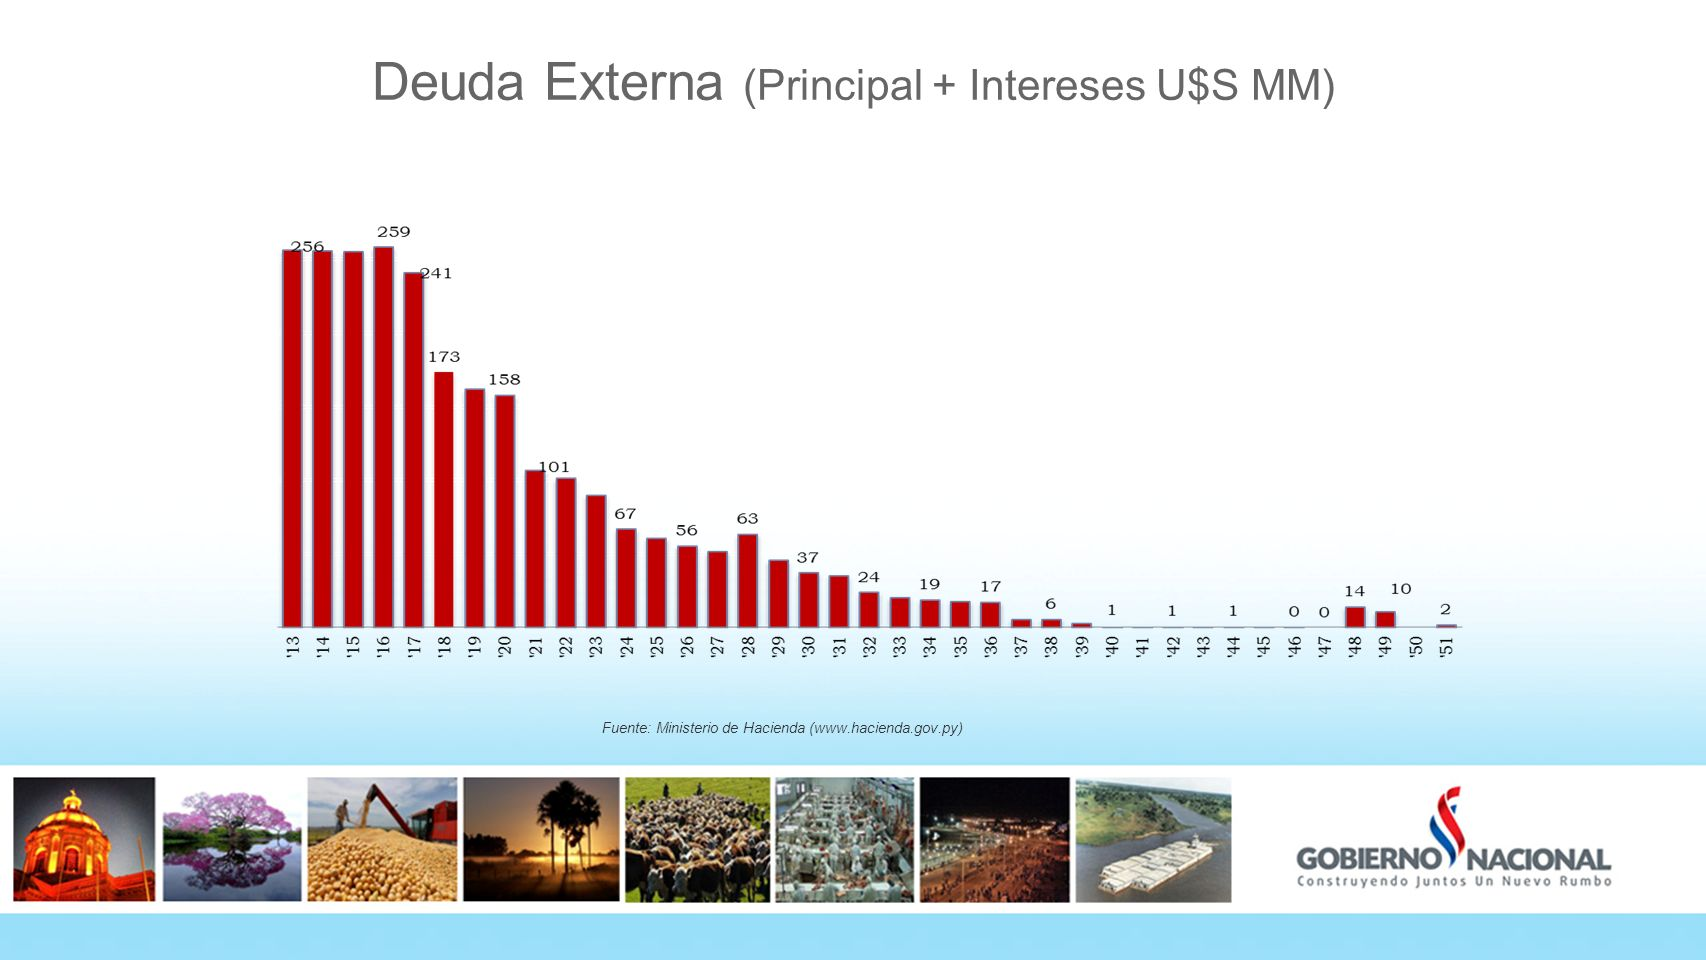 Perfil de la Dueda Externa Source: Central Bank of Paraguay, EIU, Moodys, S&P.